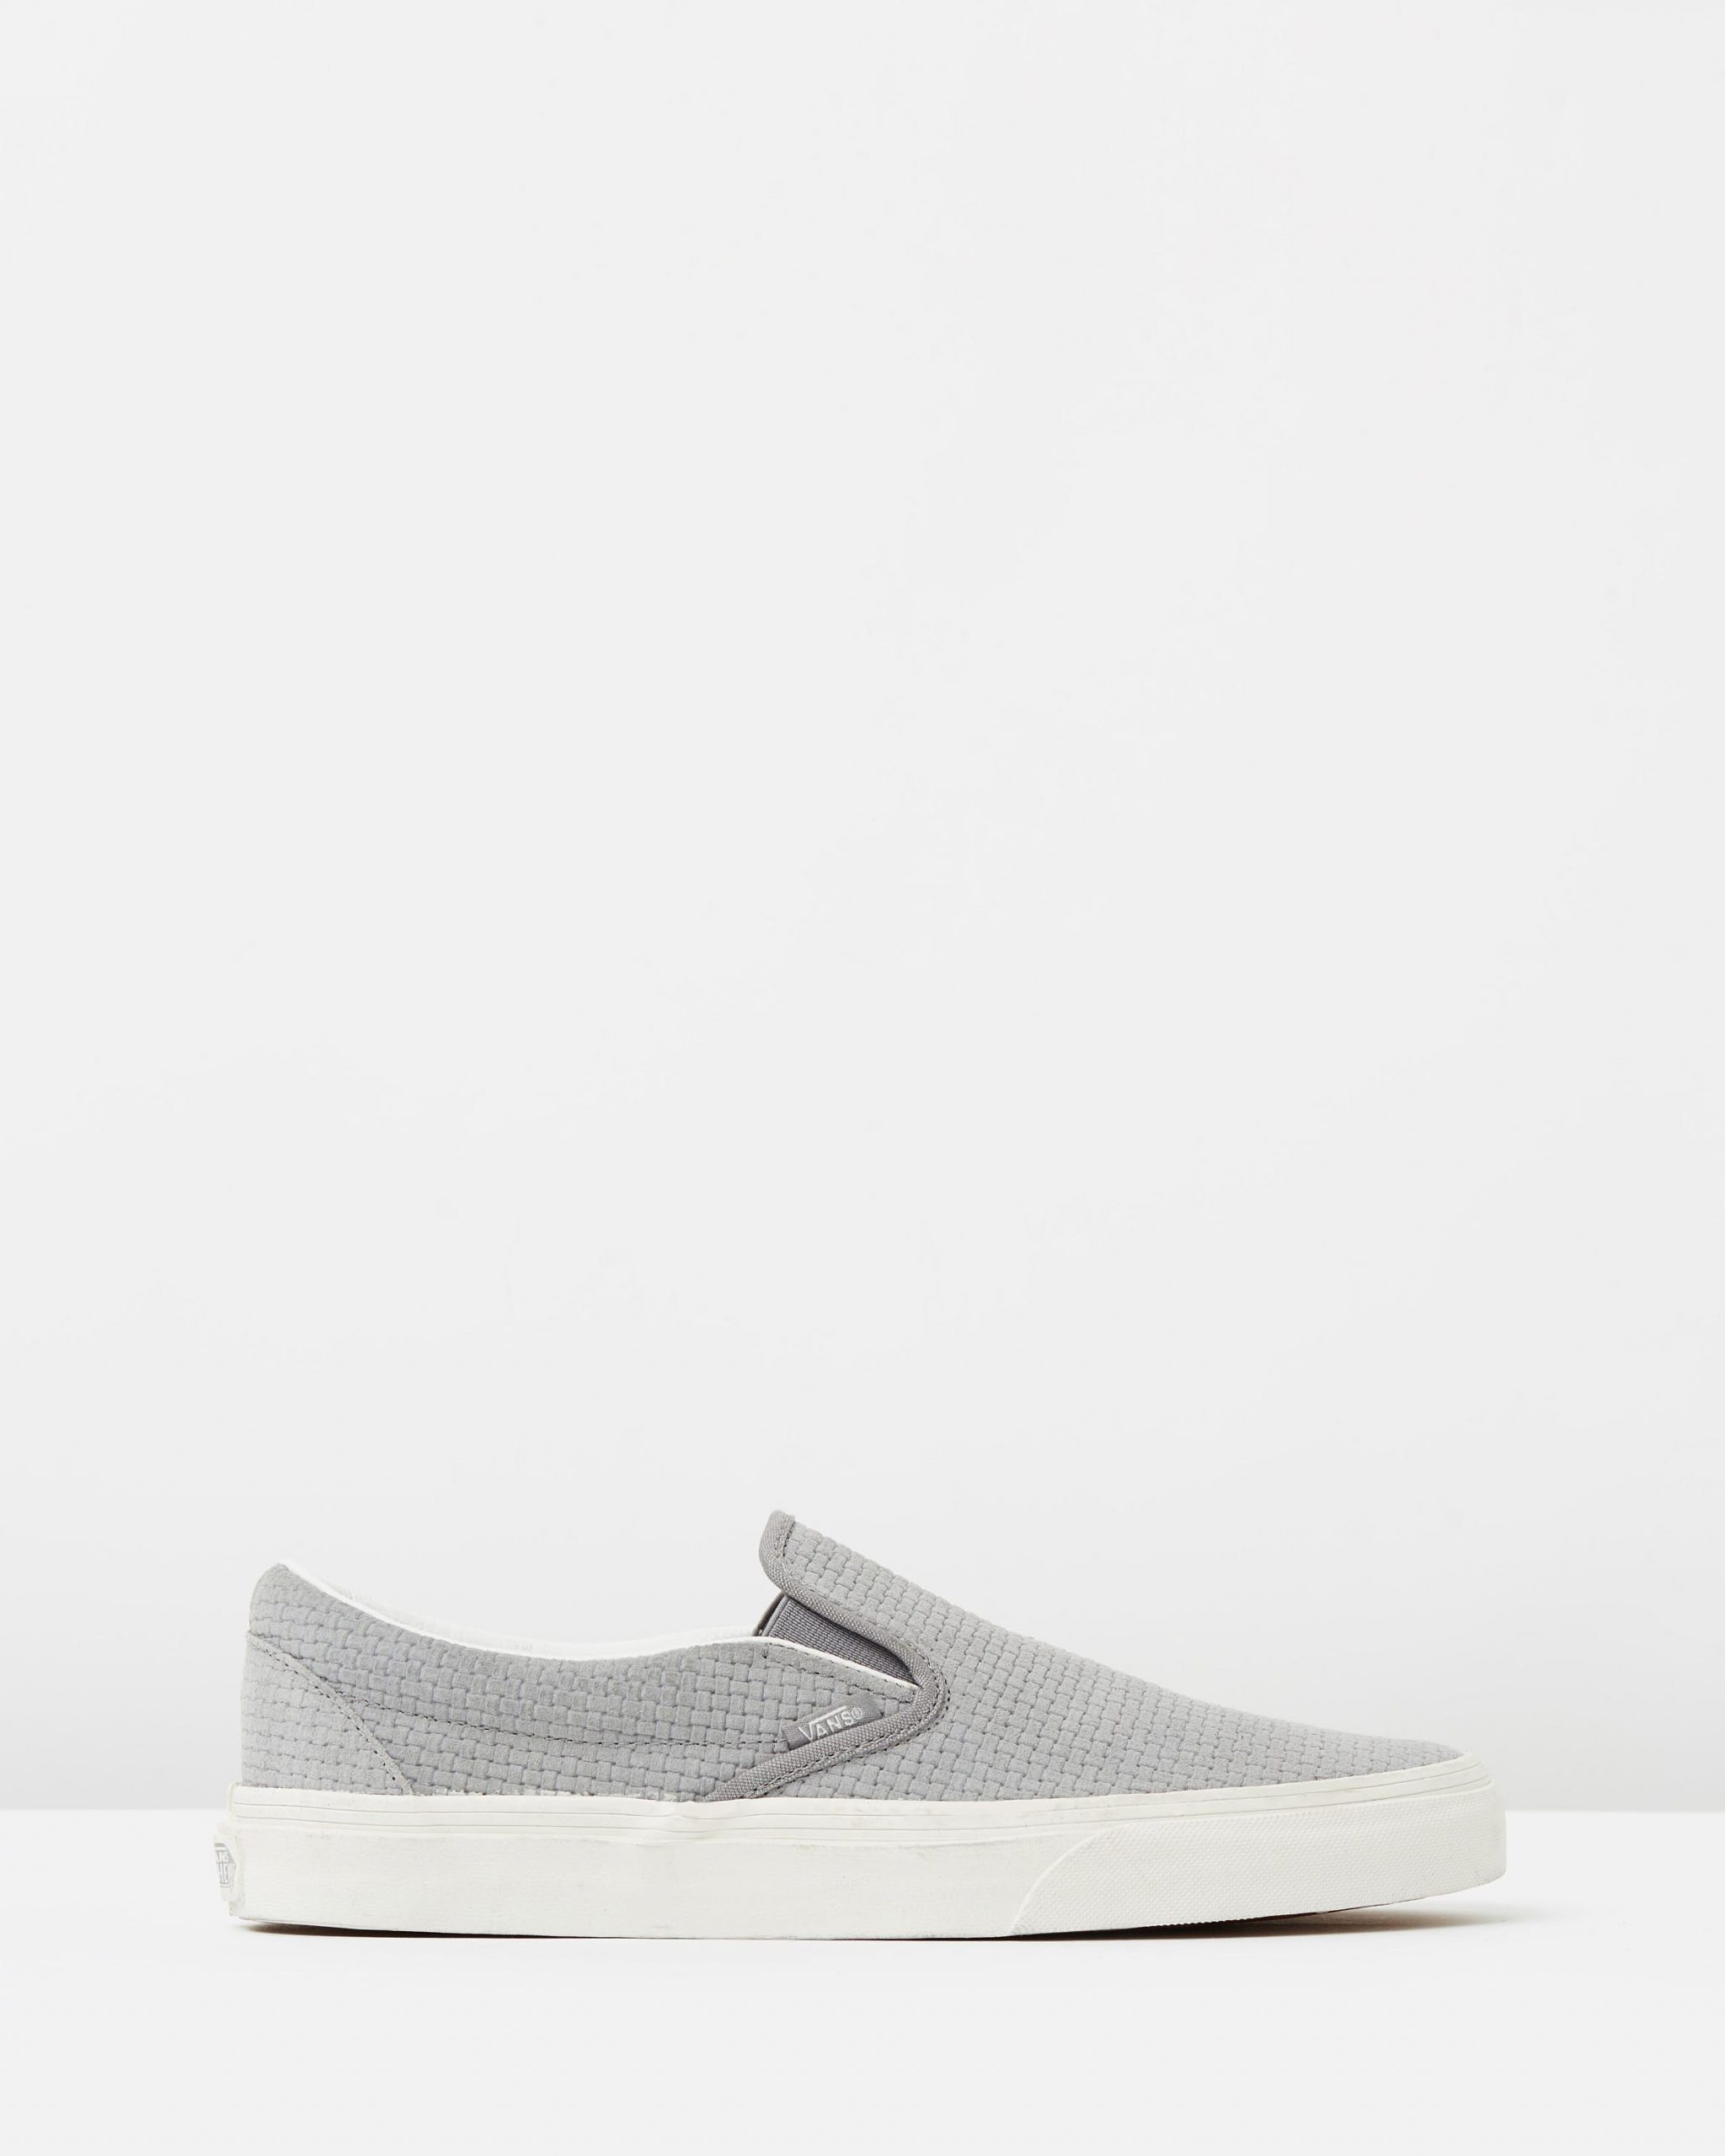 Vans Womens Classic Slip-On Wild Dove Skate Shoe